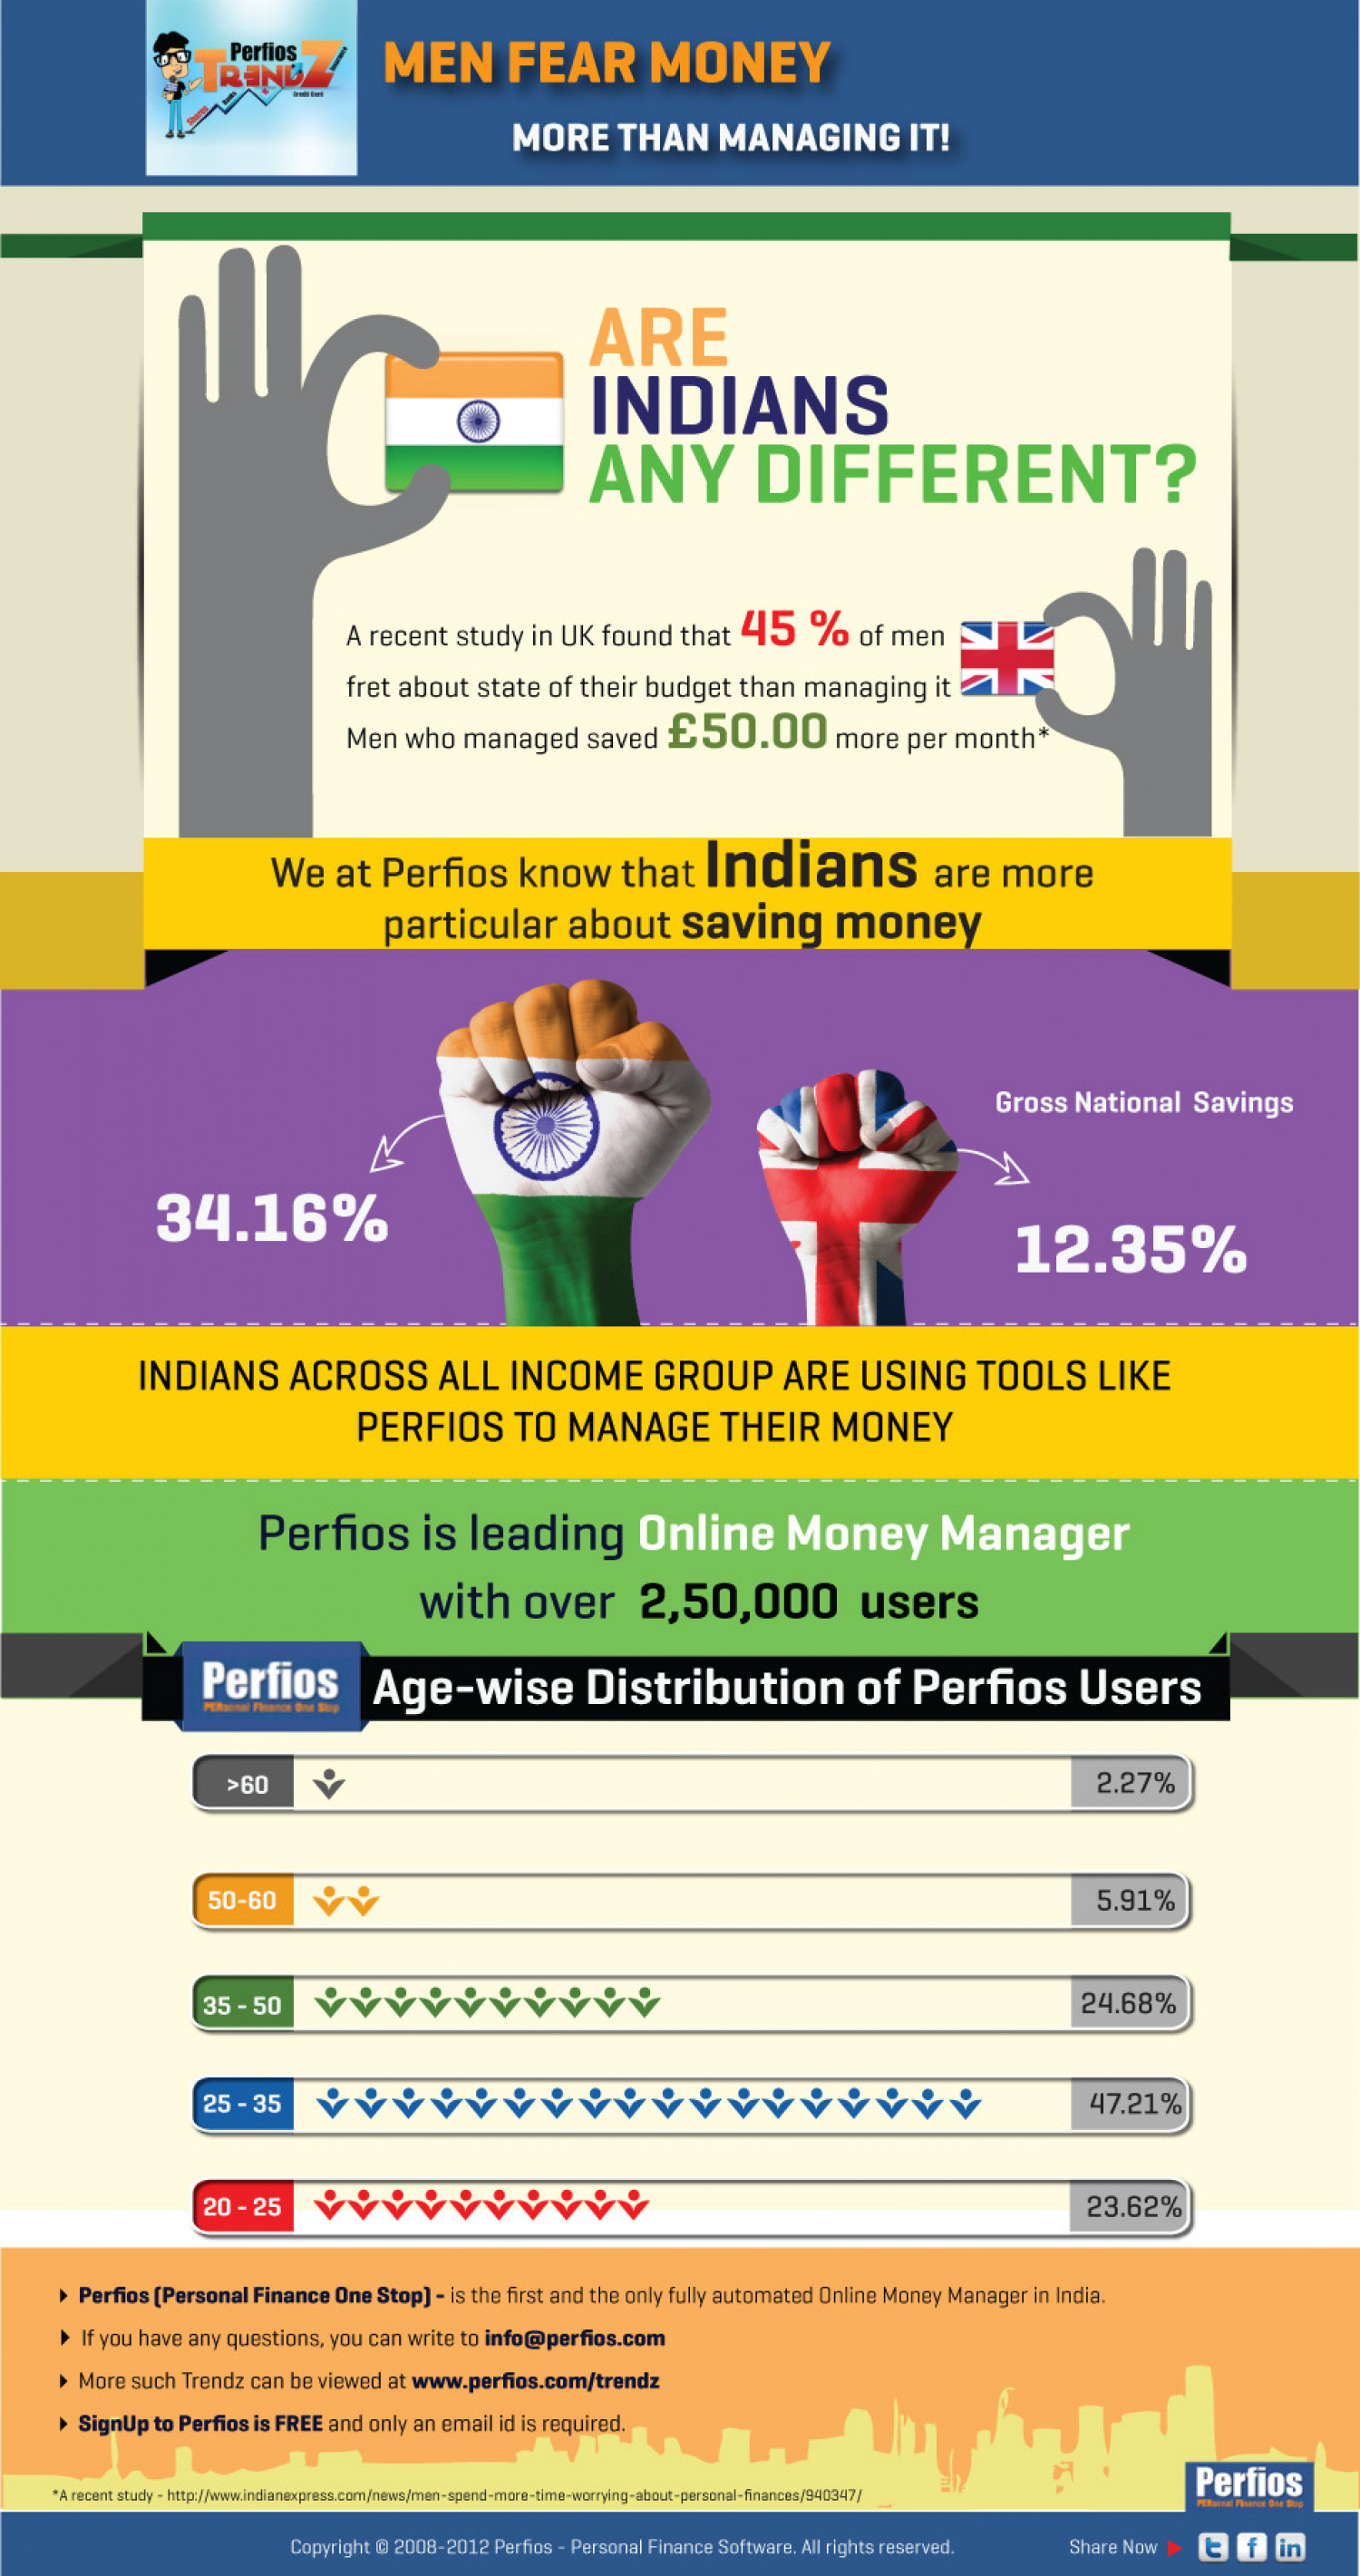 Men Fear Money More than Managing it! Infographic